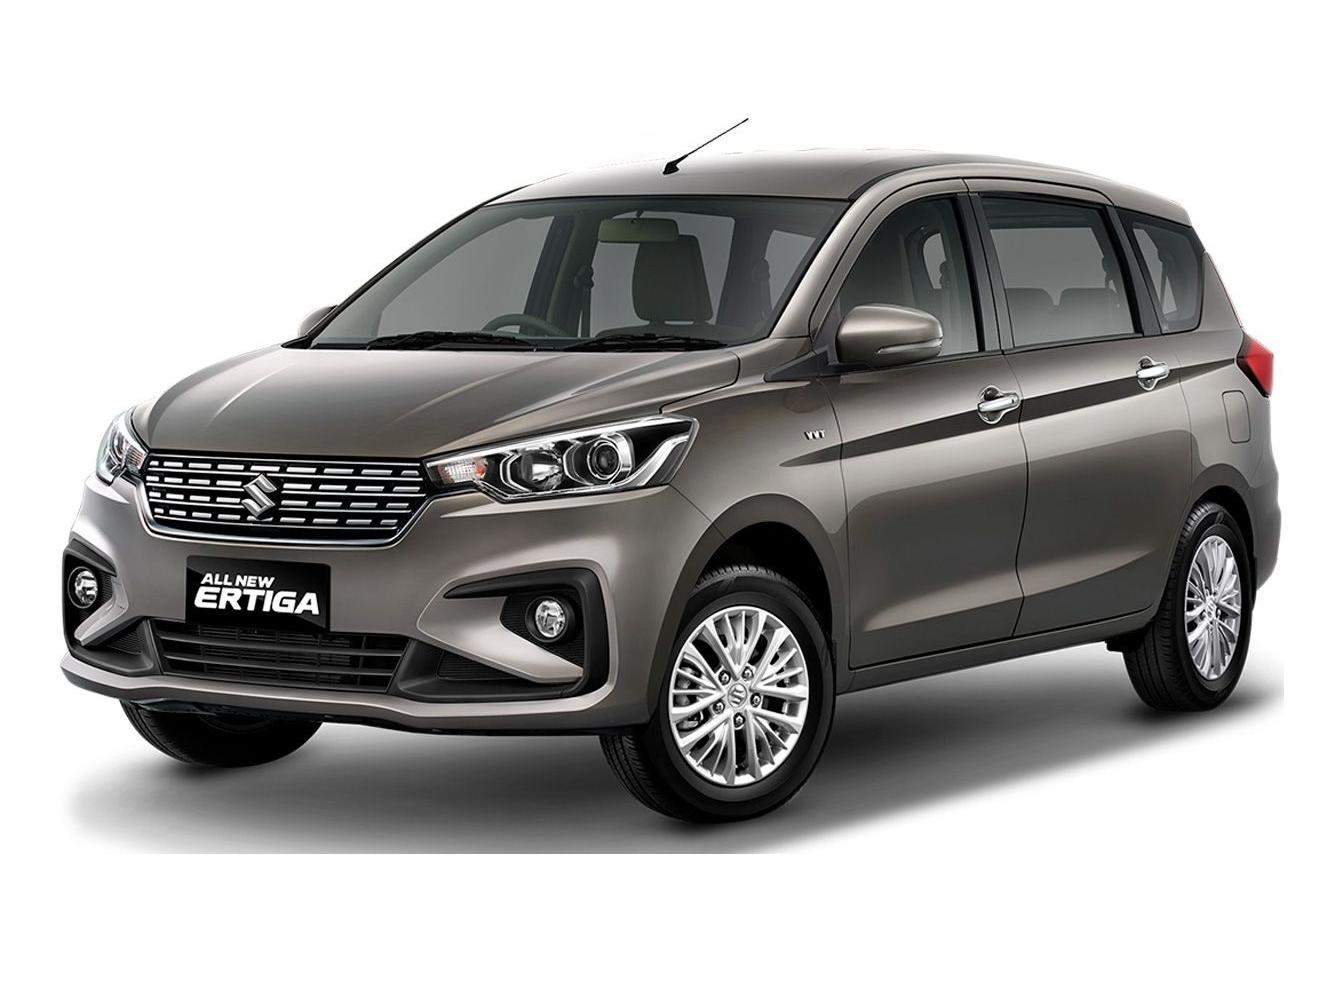 Maruti Suzuki Ertiga Price In India, Images, Specs